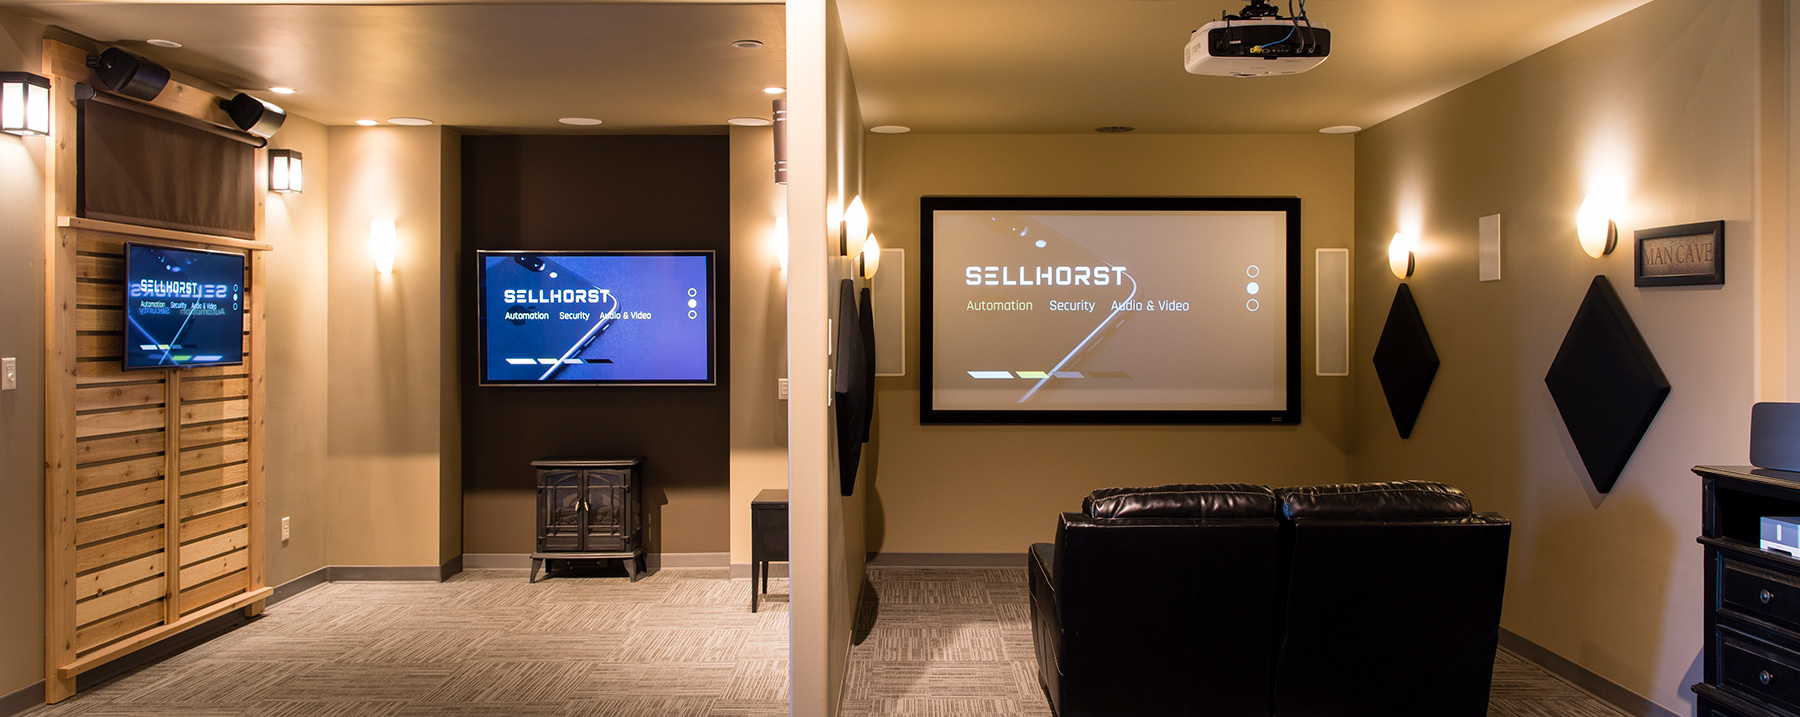 Premier audio & video solutions for your home theater